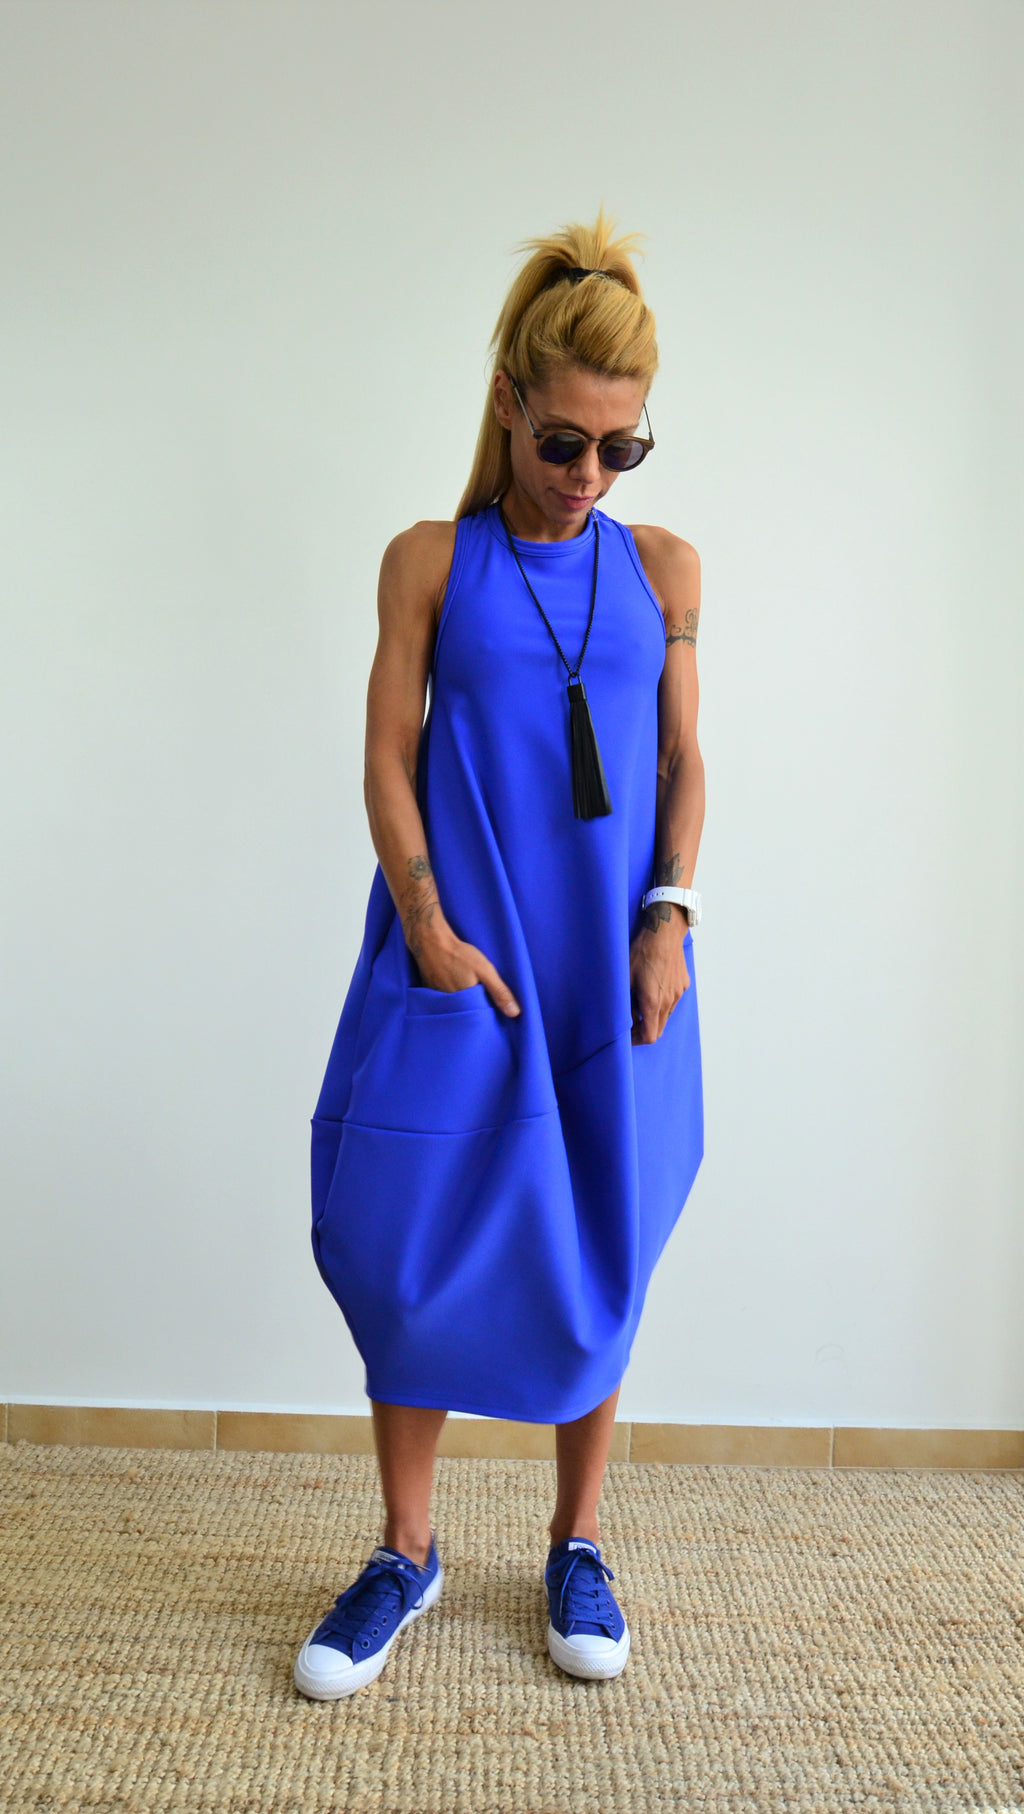 Blue Oversize Neoprene Tunic Dress with a Zipper on the Back - Clothes By Locker Room